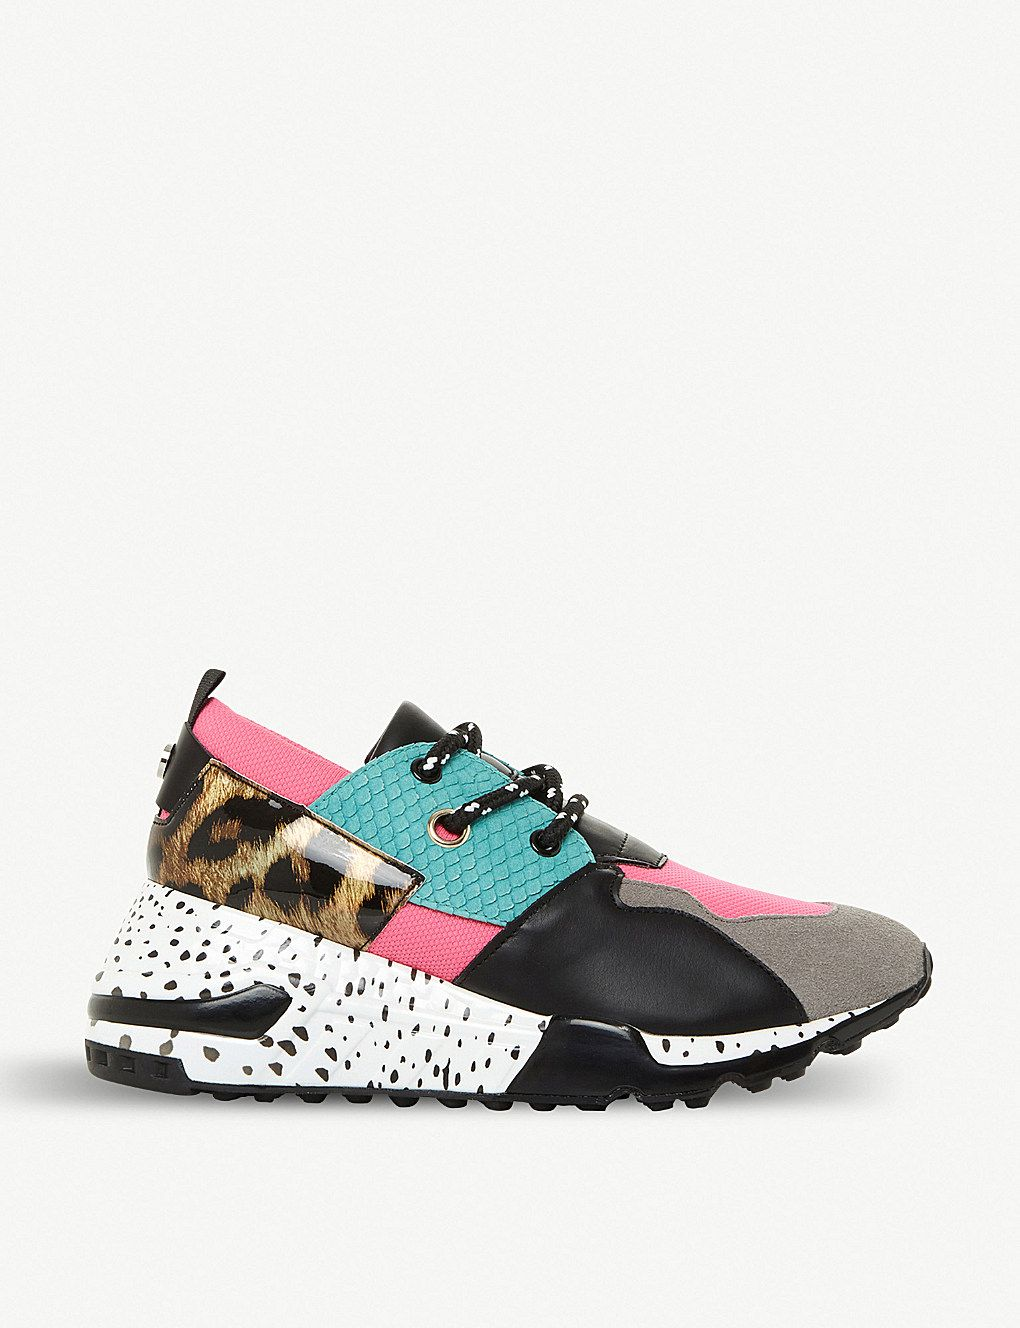 609d865e331 Cliff multi-coloured chunky-sole trainers in 2019 | Fashions ...